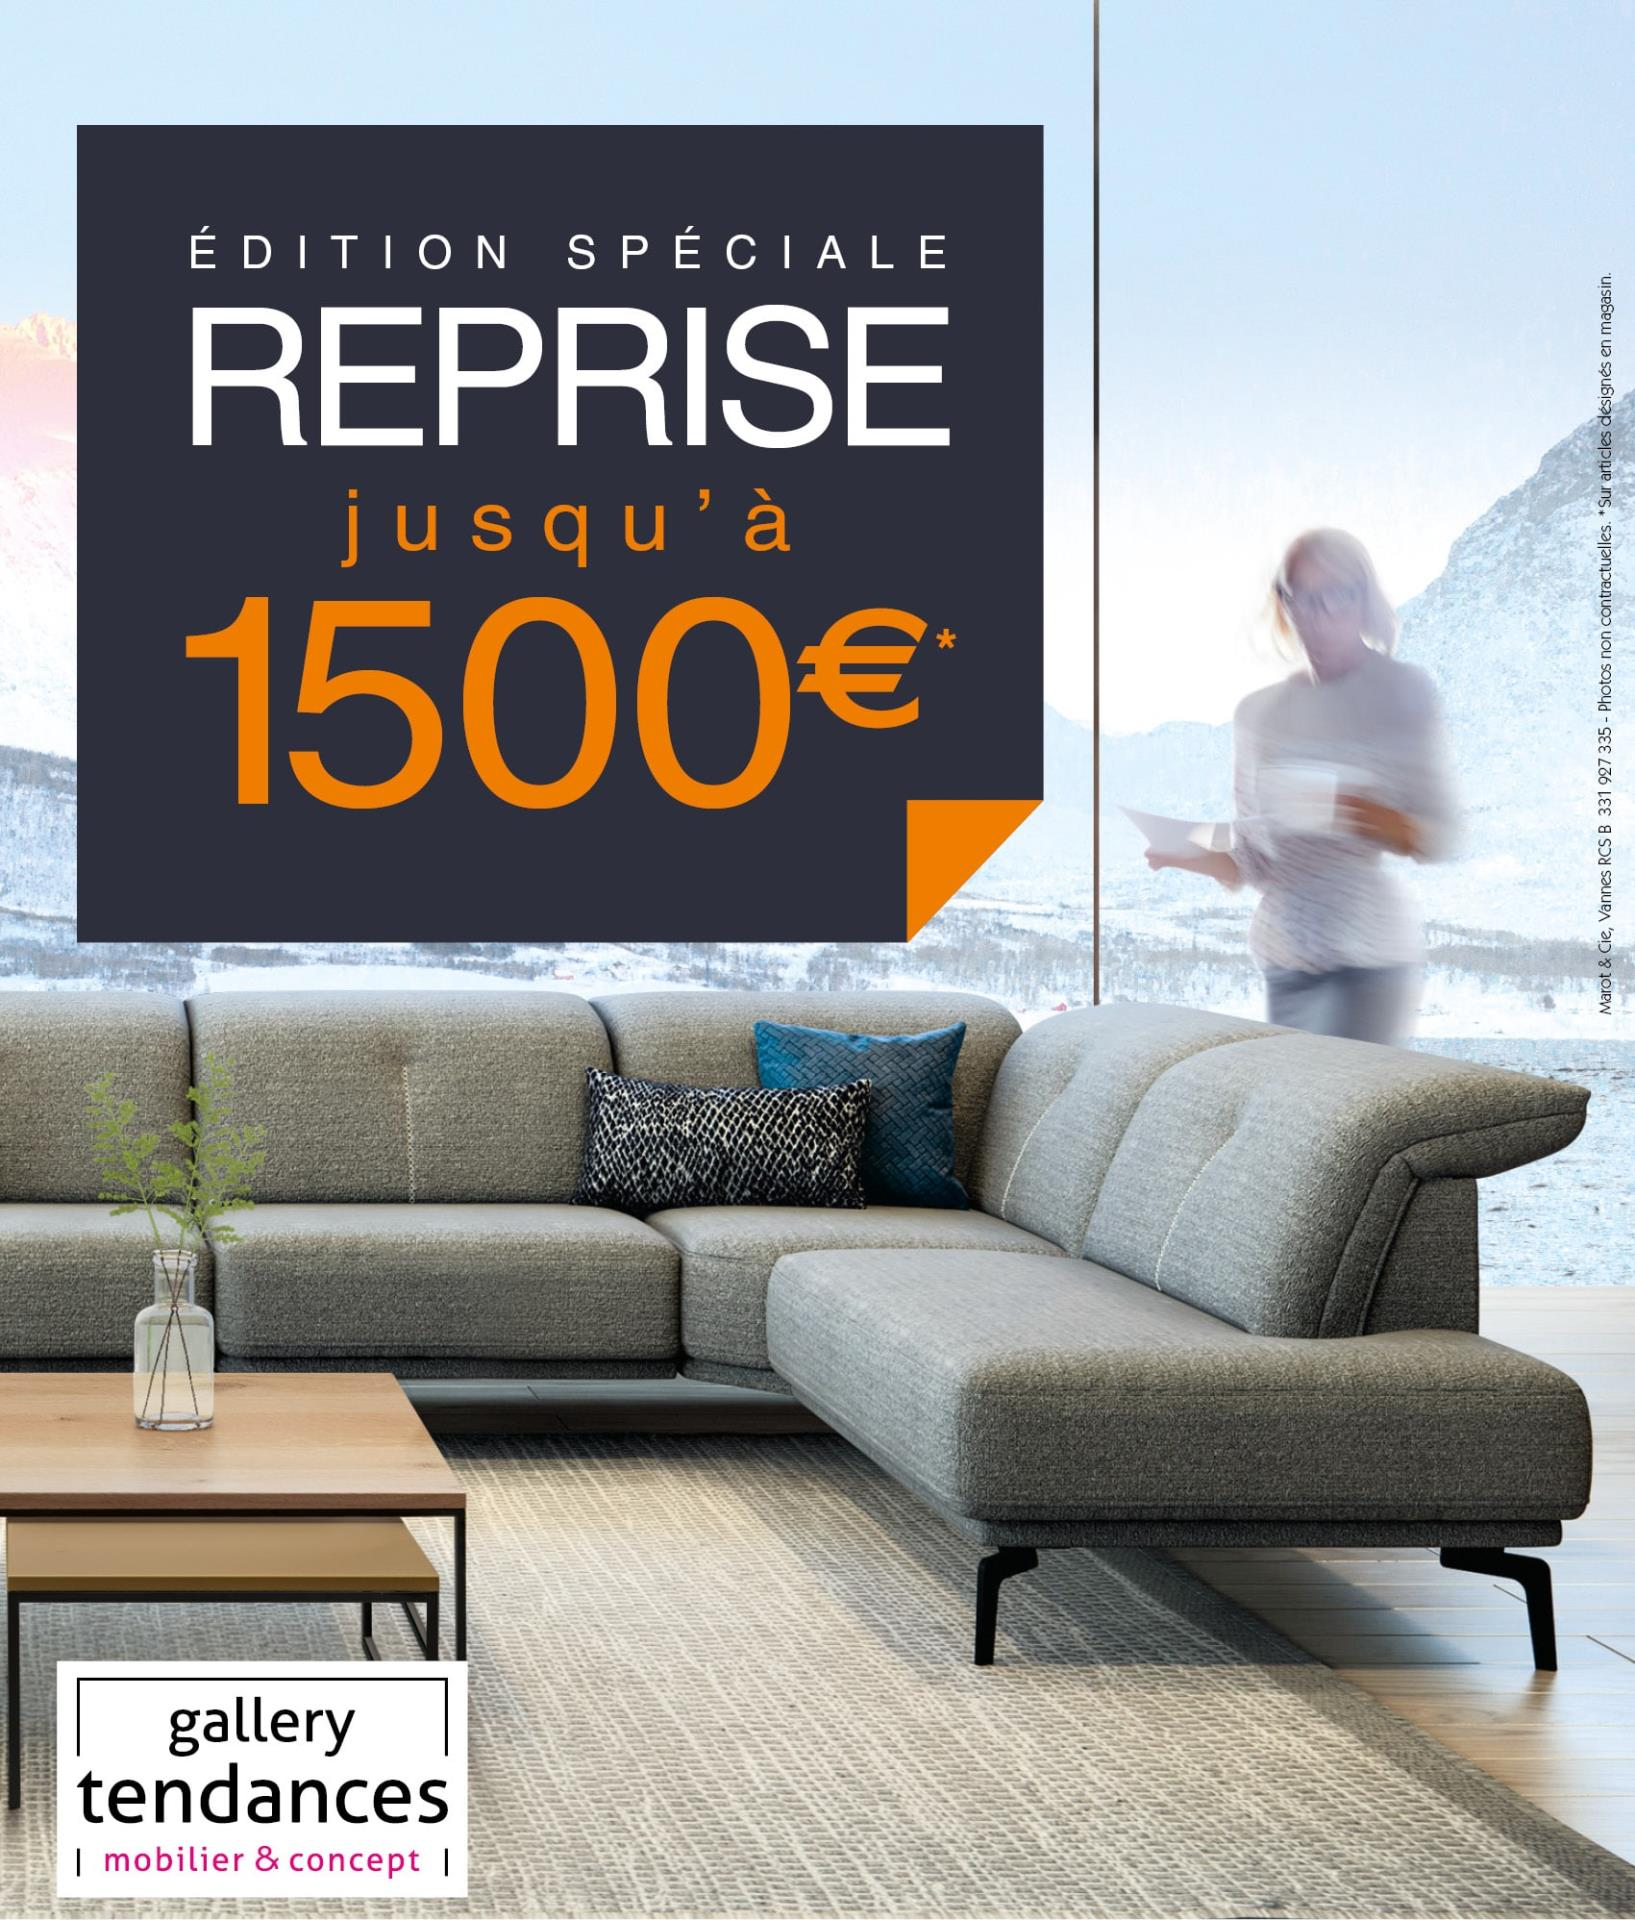 Reprise salon Printemps 2019